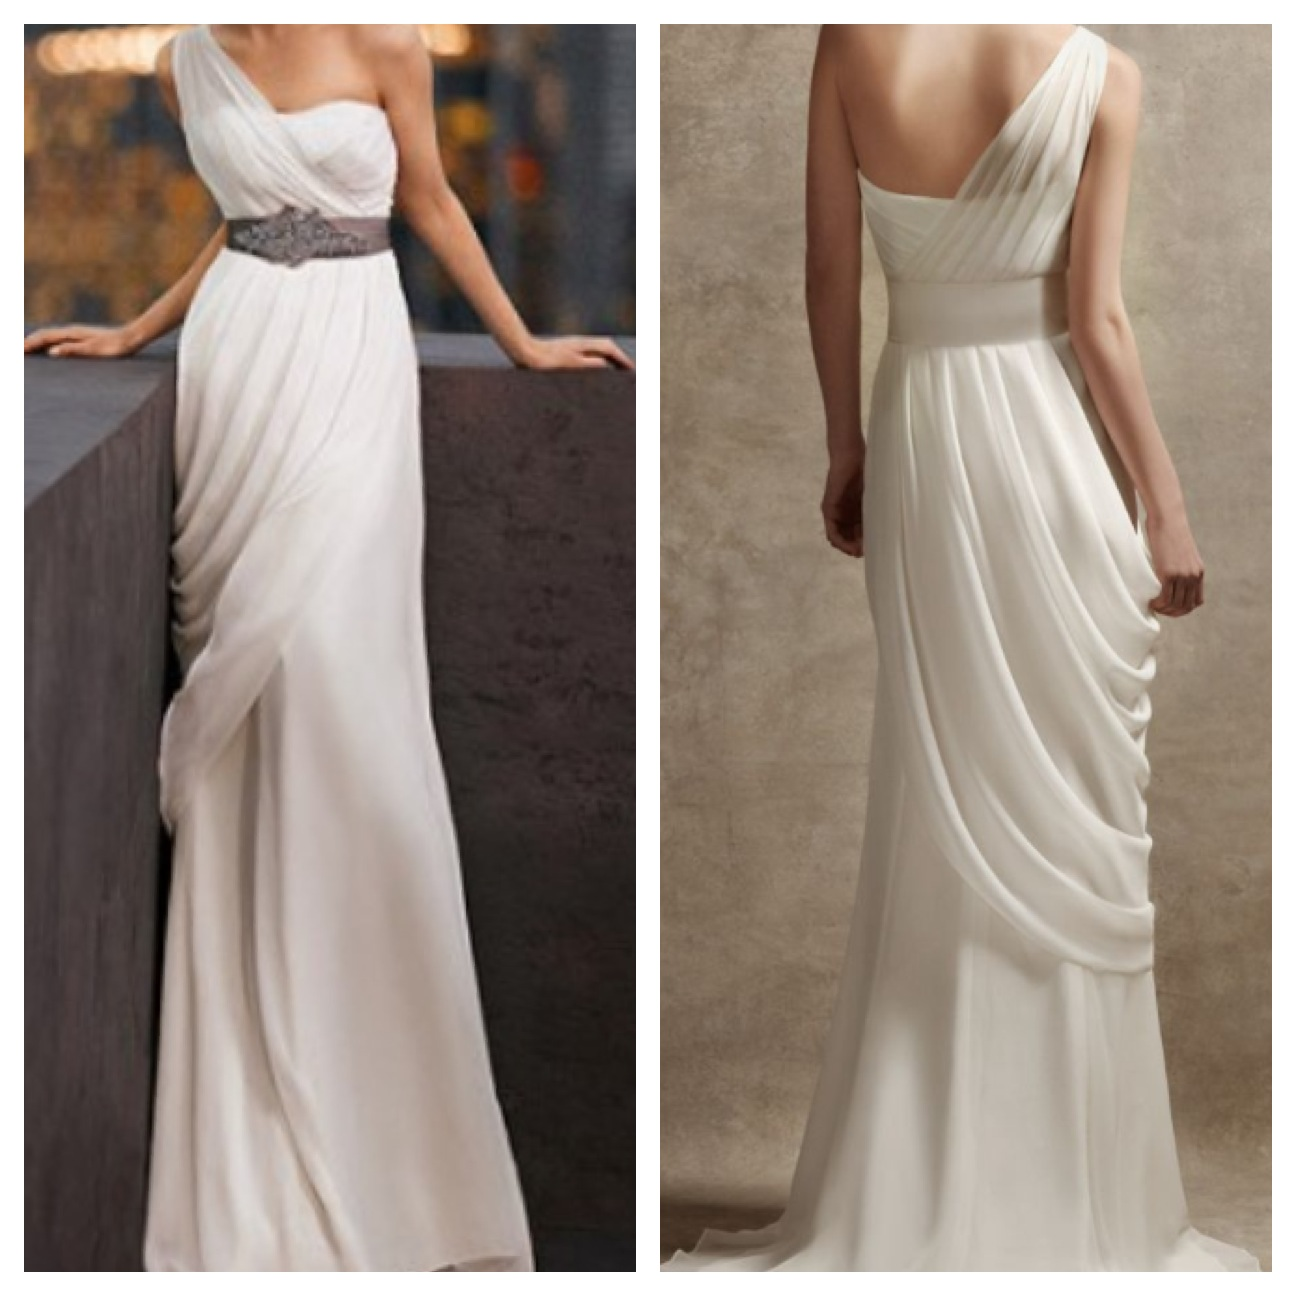 wedding greek goddess wedding dress verawangbridal Vera Wang Greek Goddess